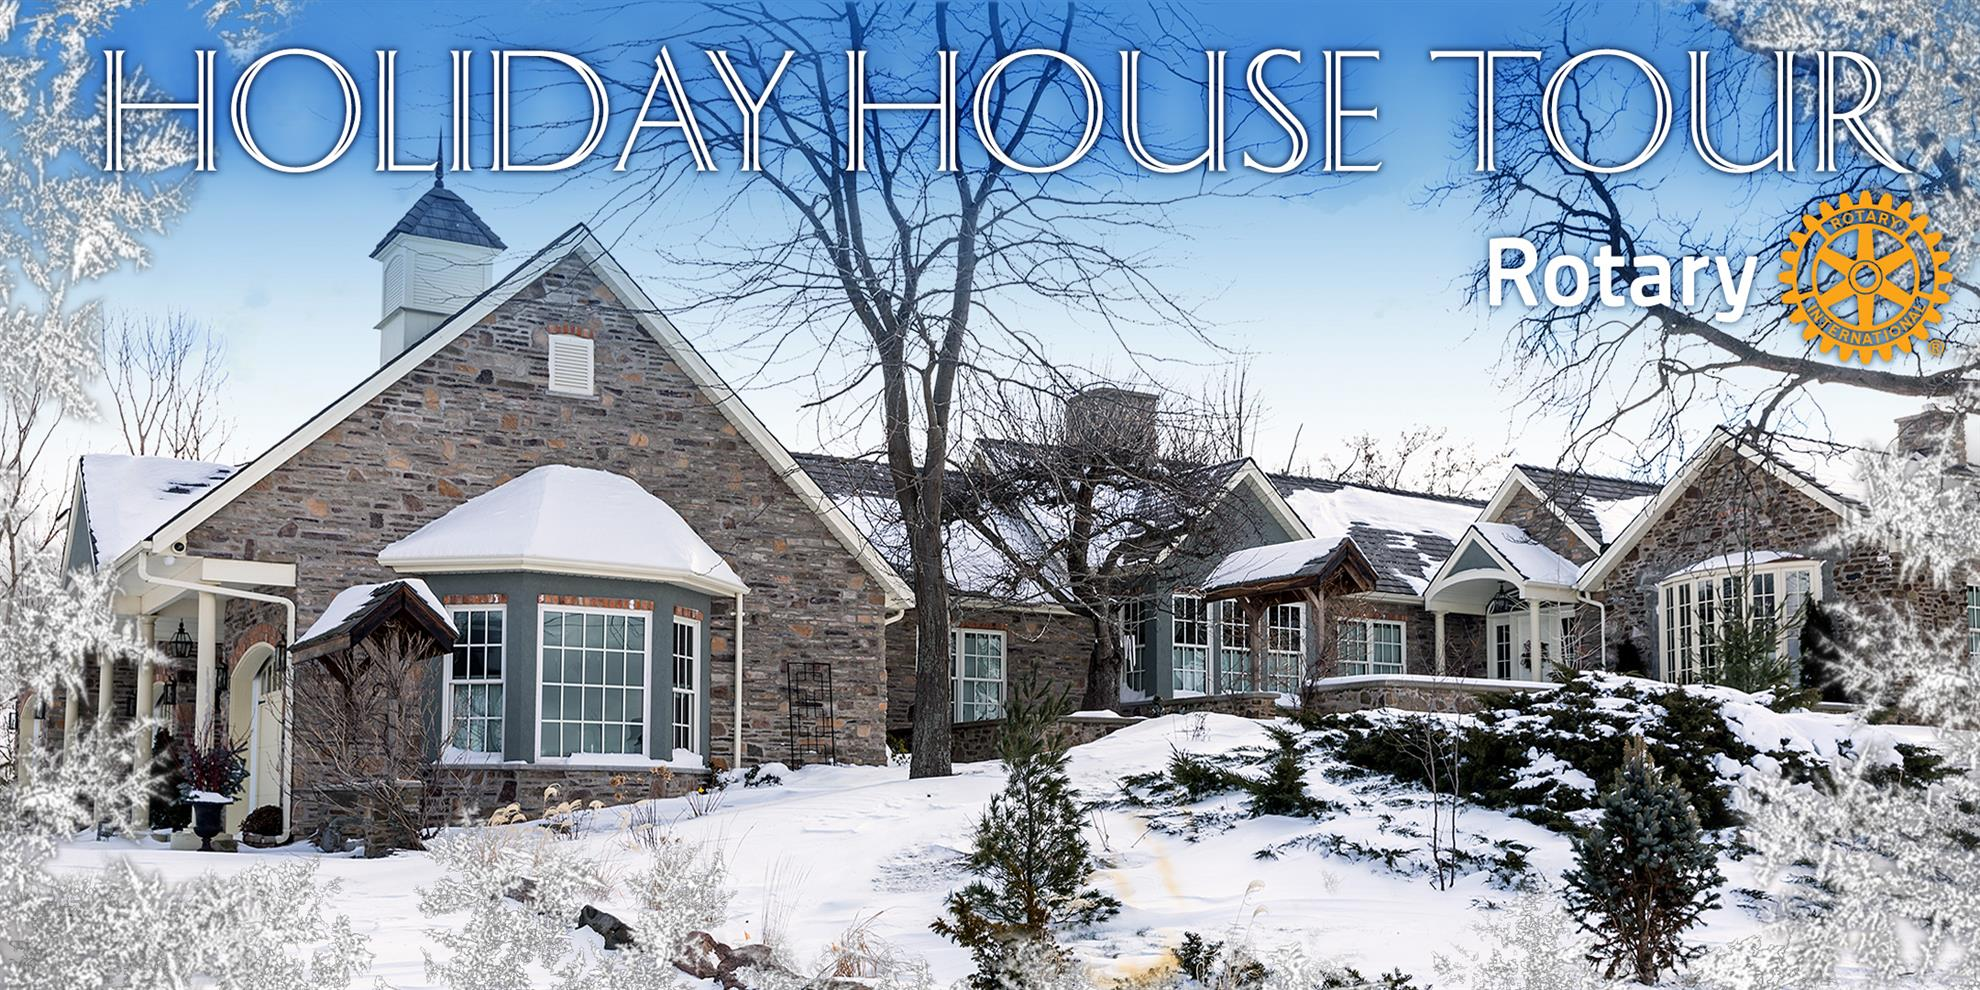 Niagara-on-the-Lake Rotary Holiday House Tour